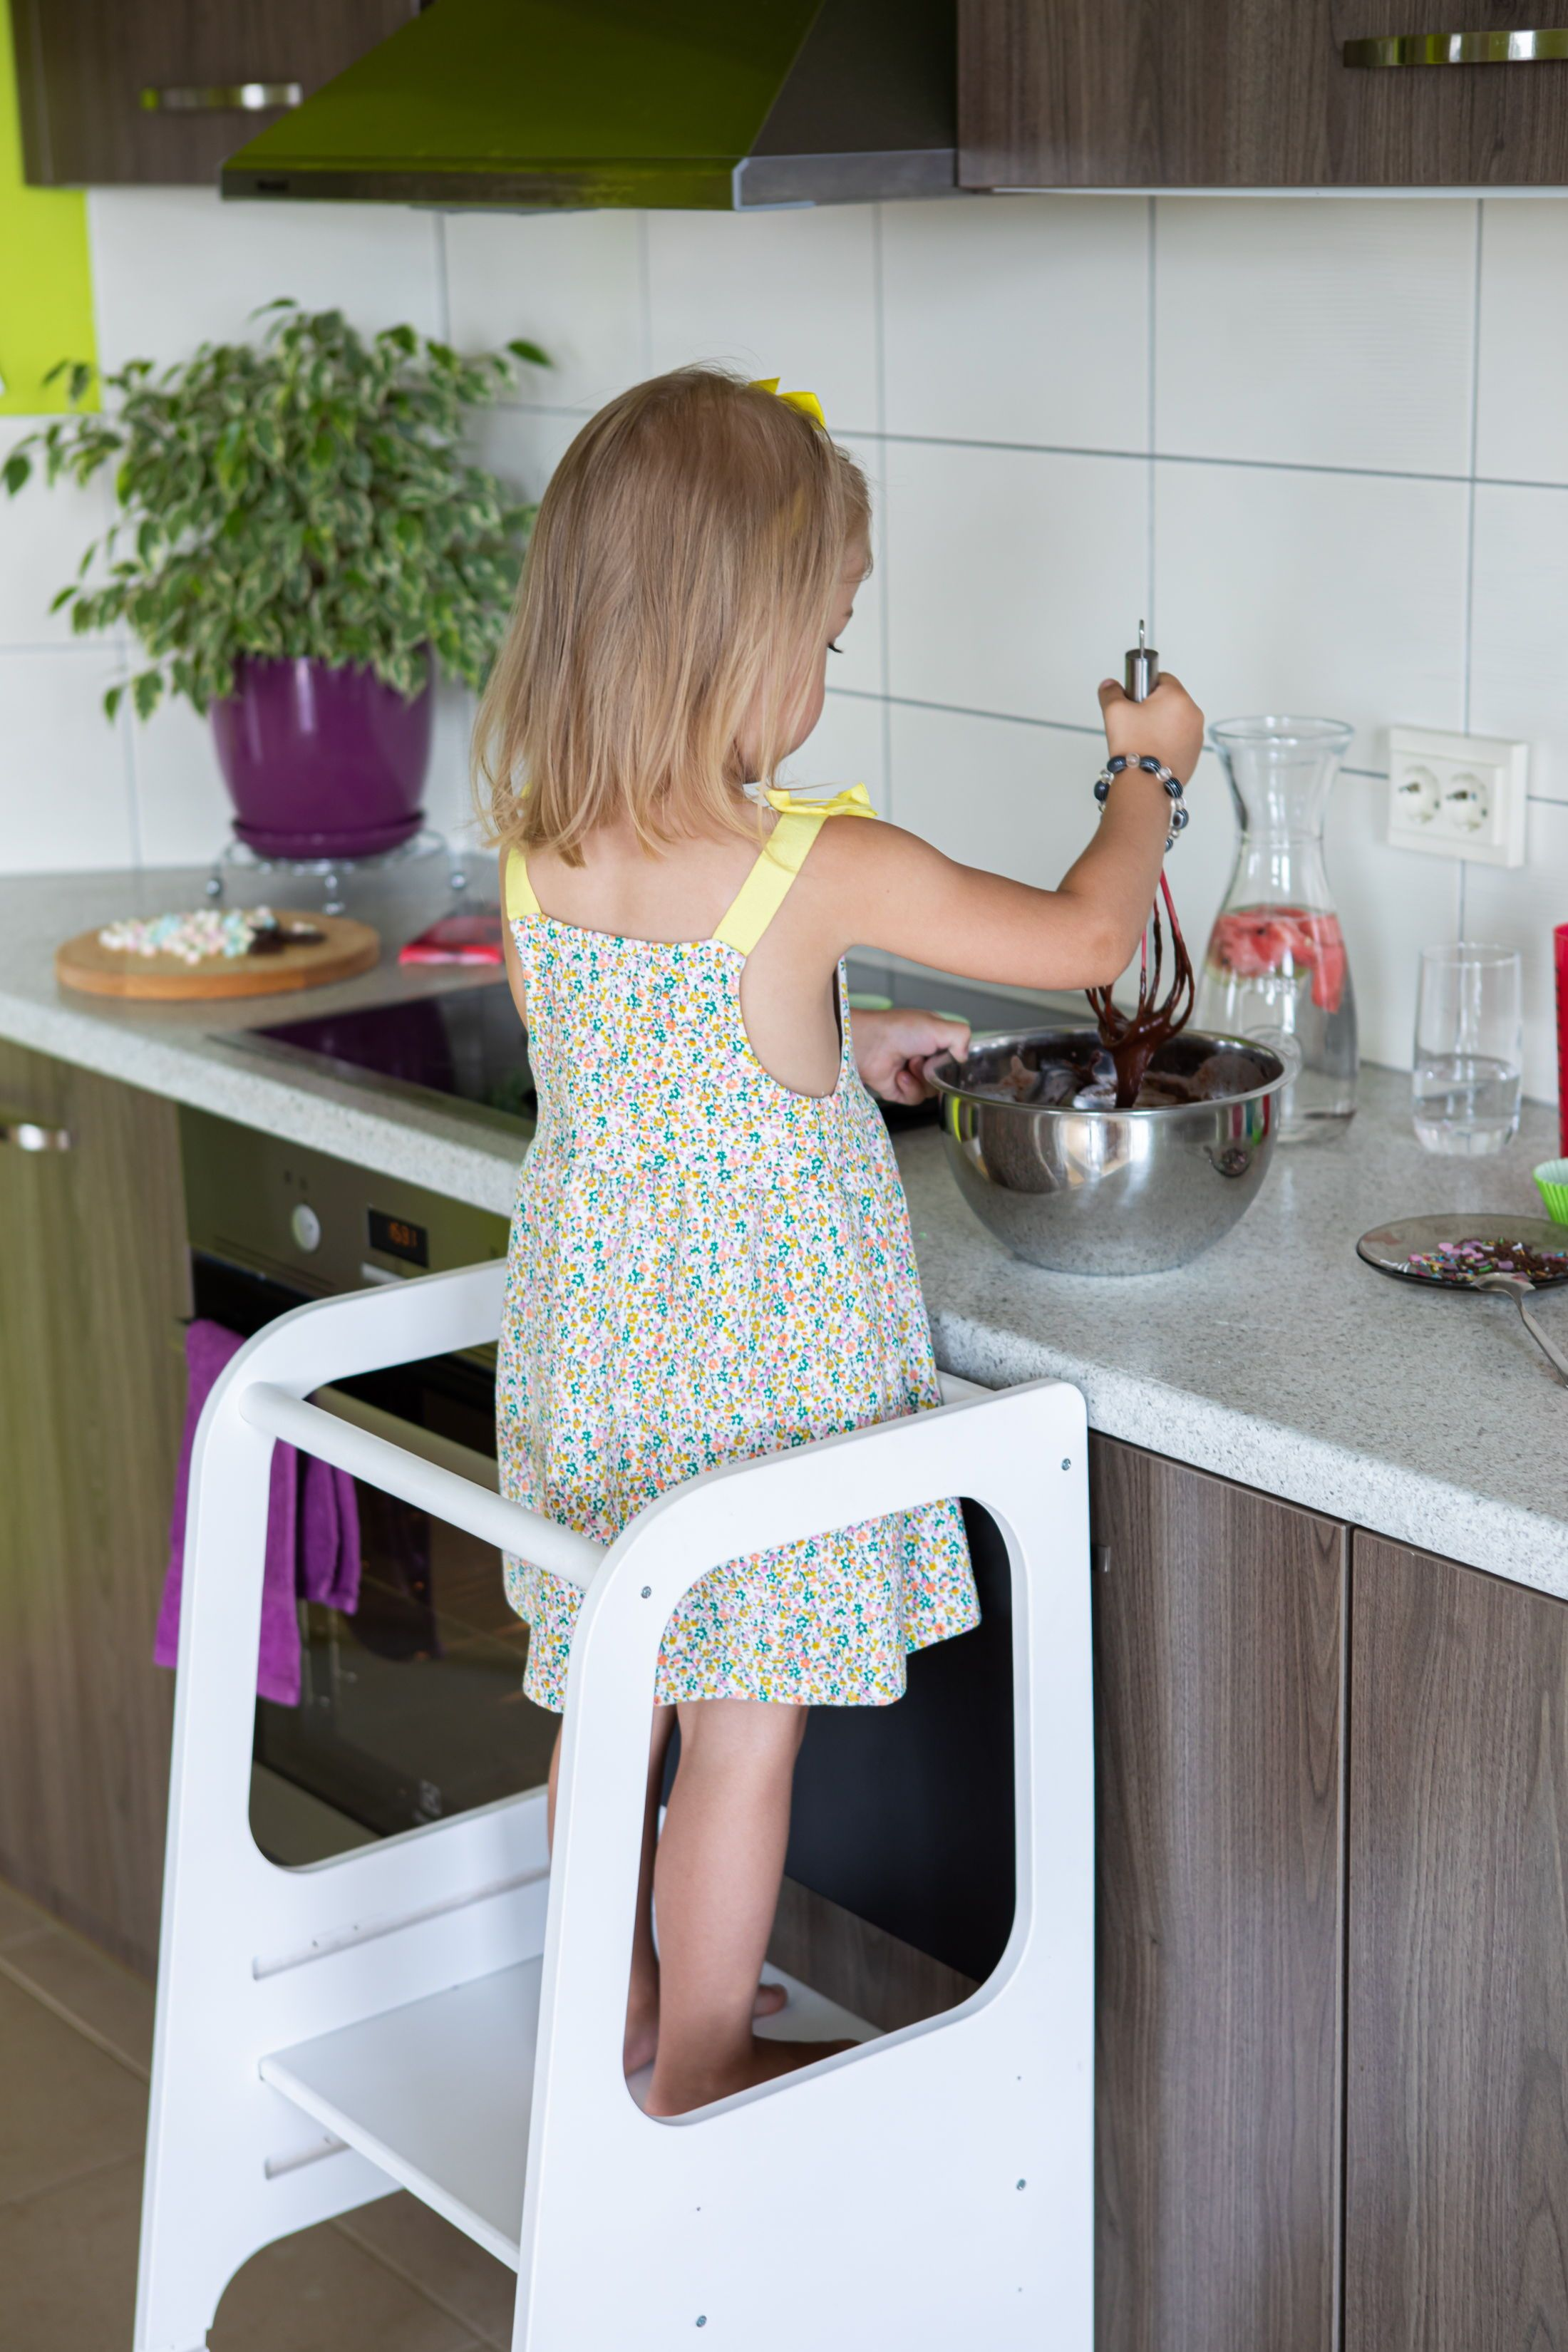 Marvelous Kitchen Tower Kitchen Helper Tower Kitchen Stool Toddler Creativecarmelina Interior Chair Design Creativecarmelinacom